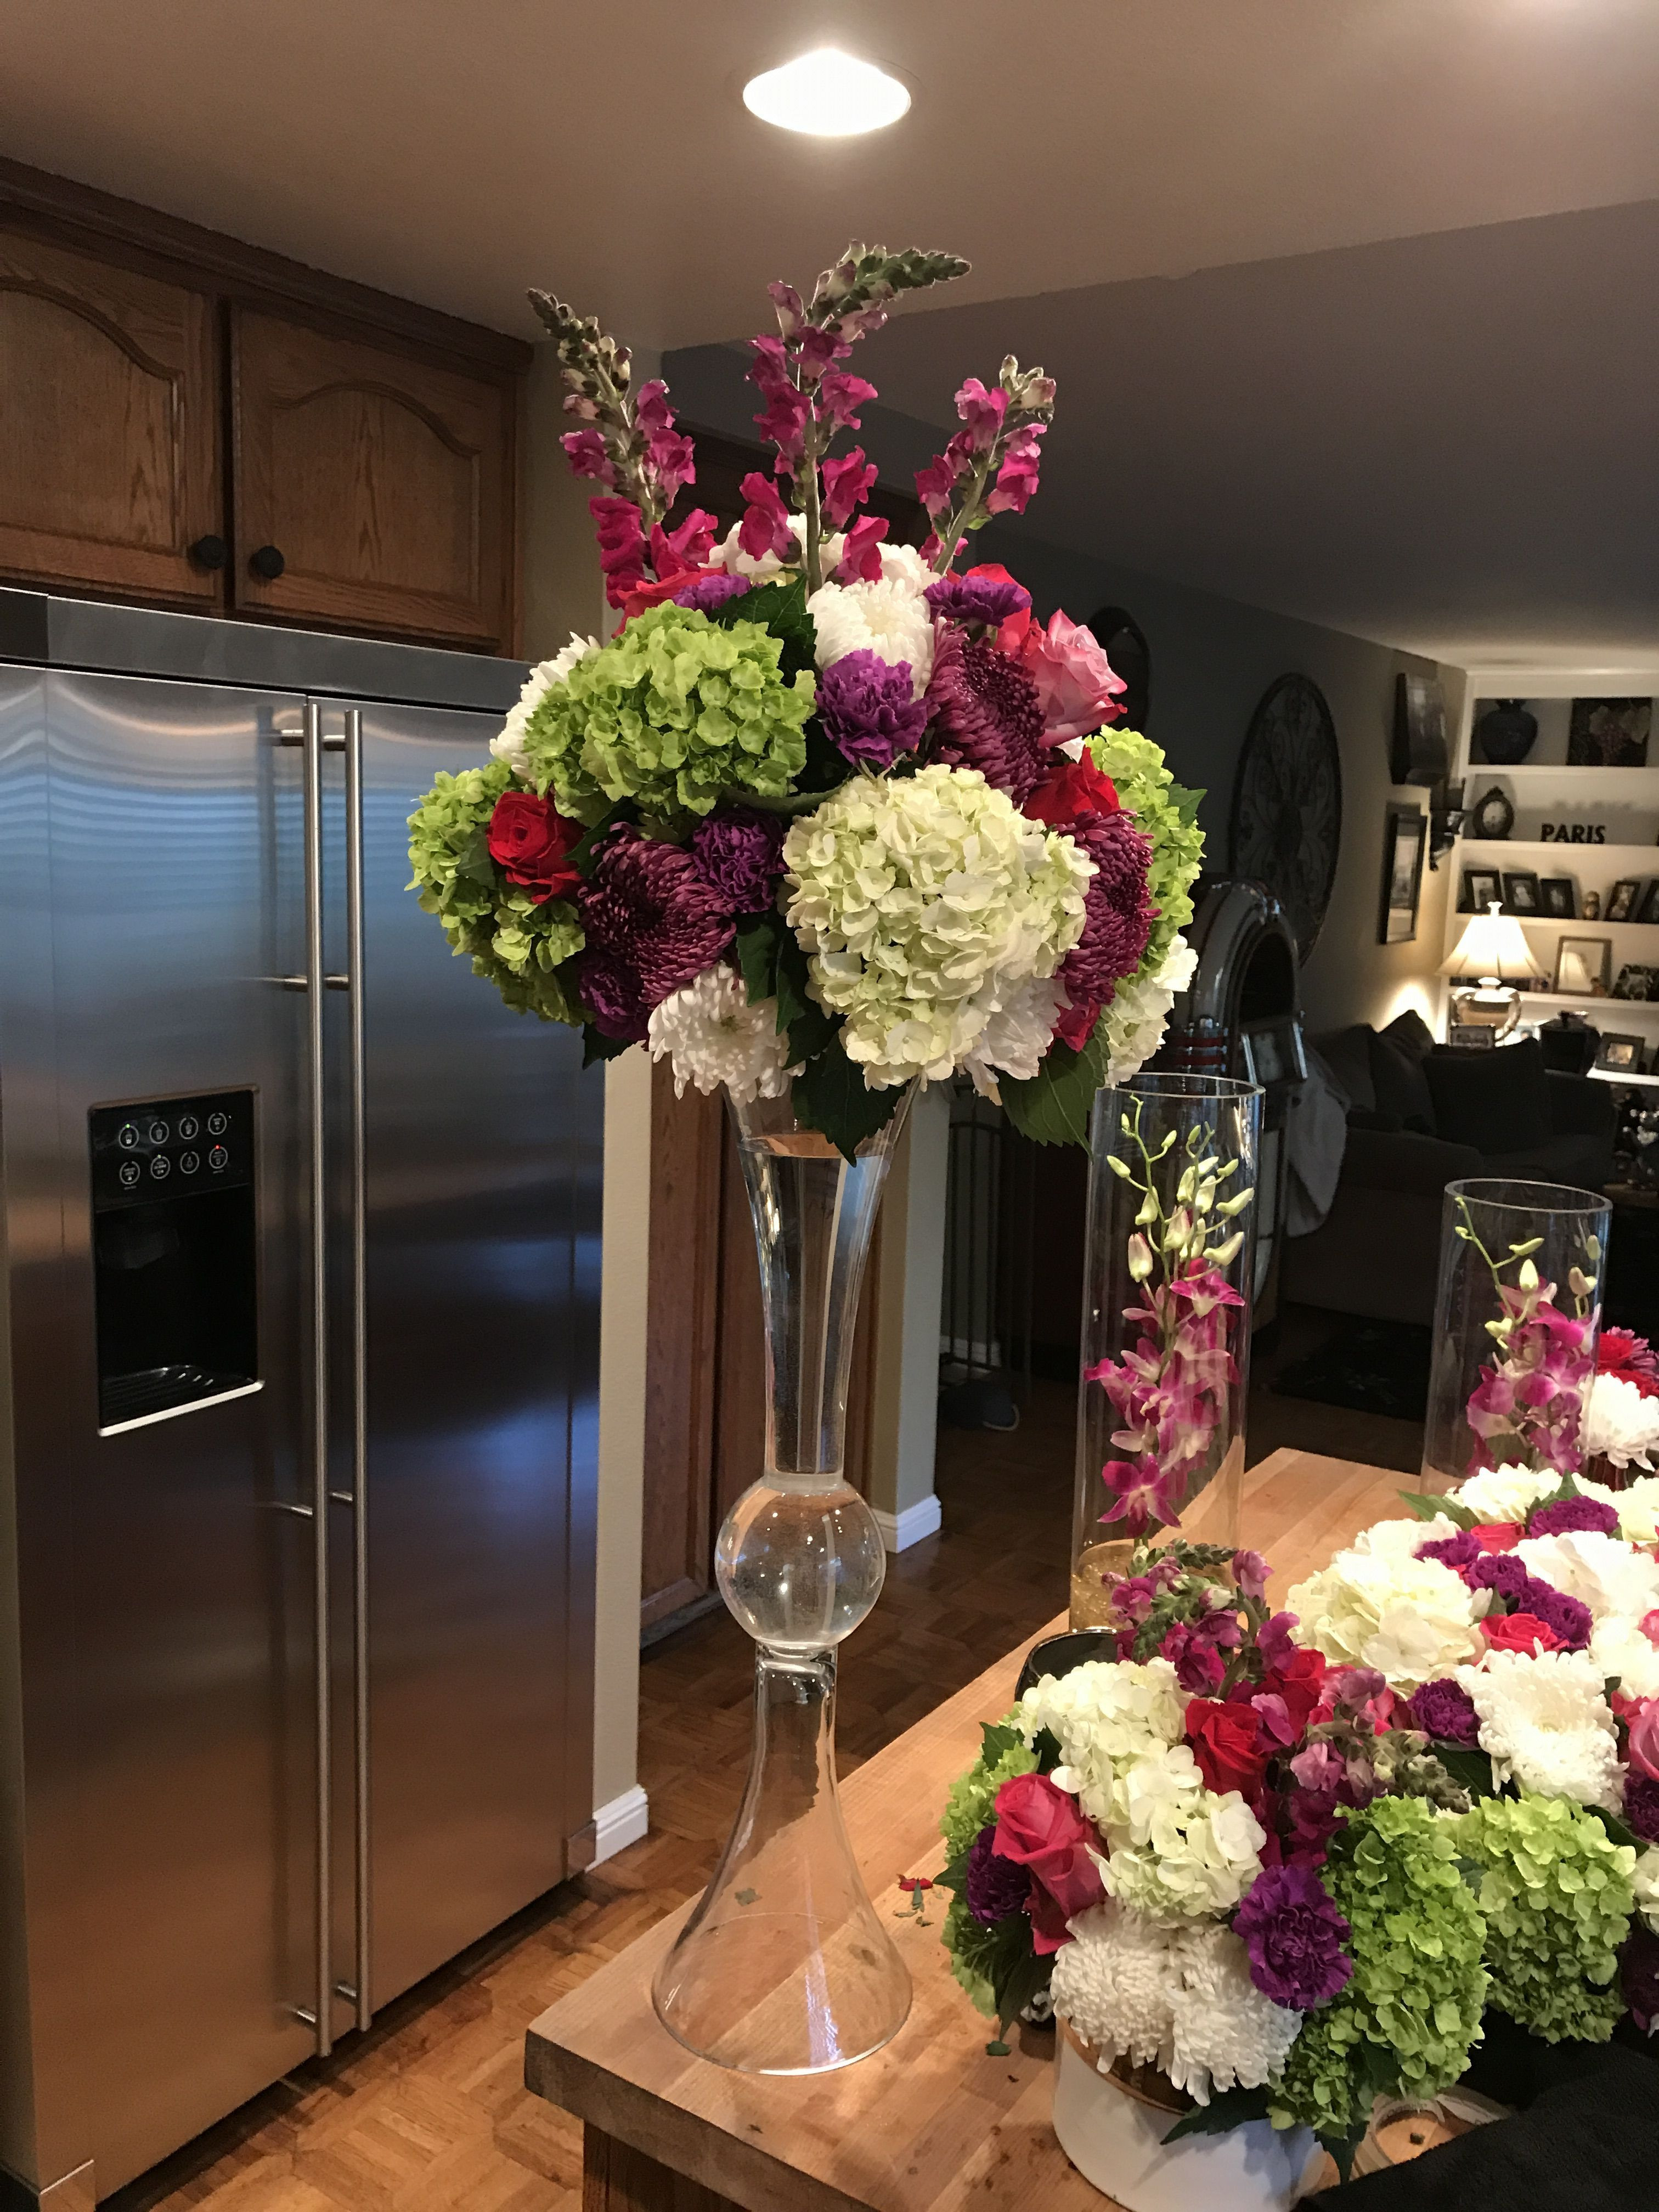 wall vases for sale of 24 tall vases for sale the weekly world in colorful tall centerpiece in trumpet vase